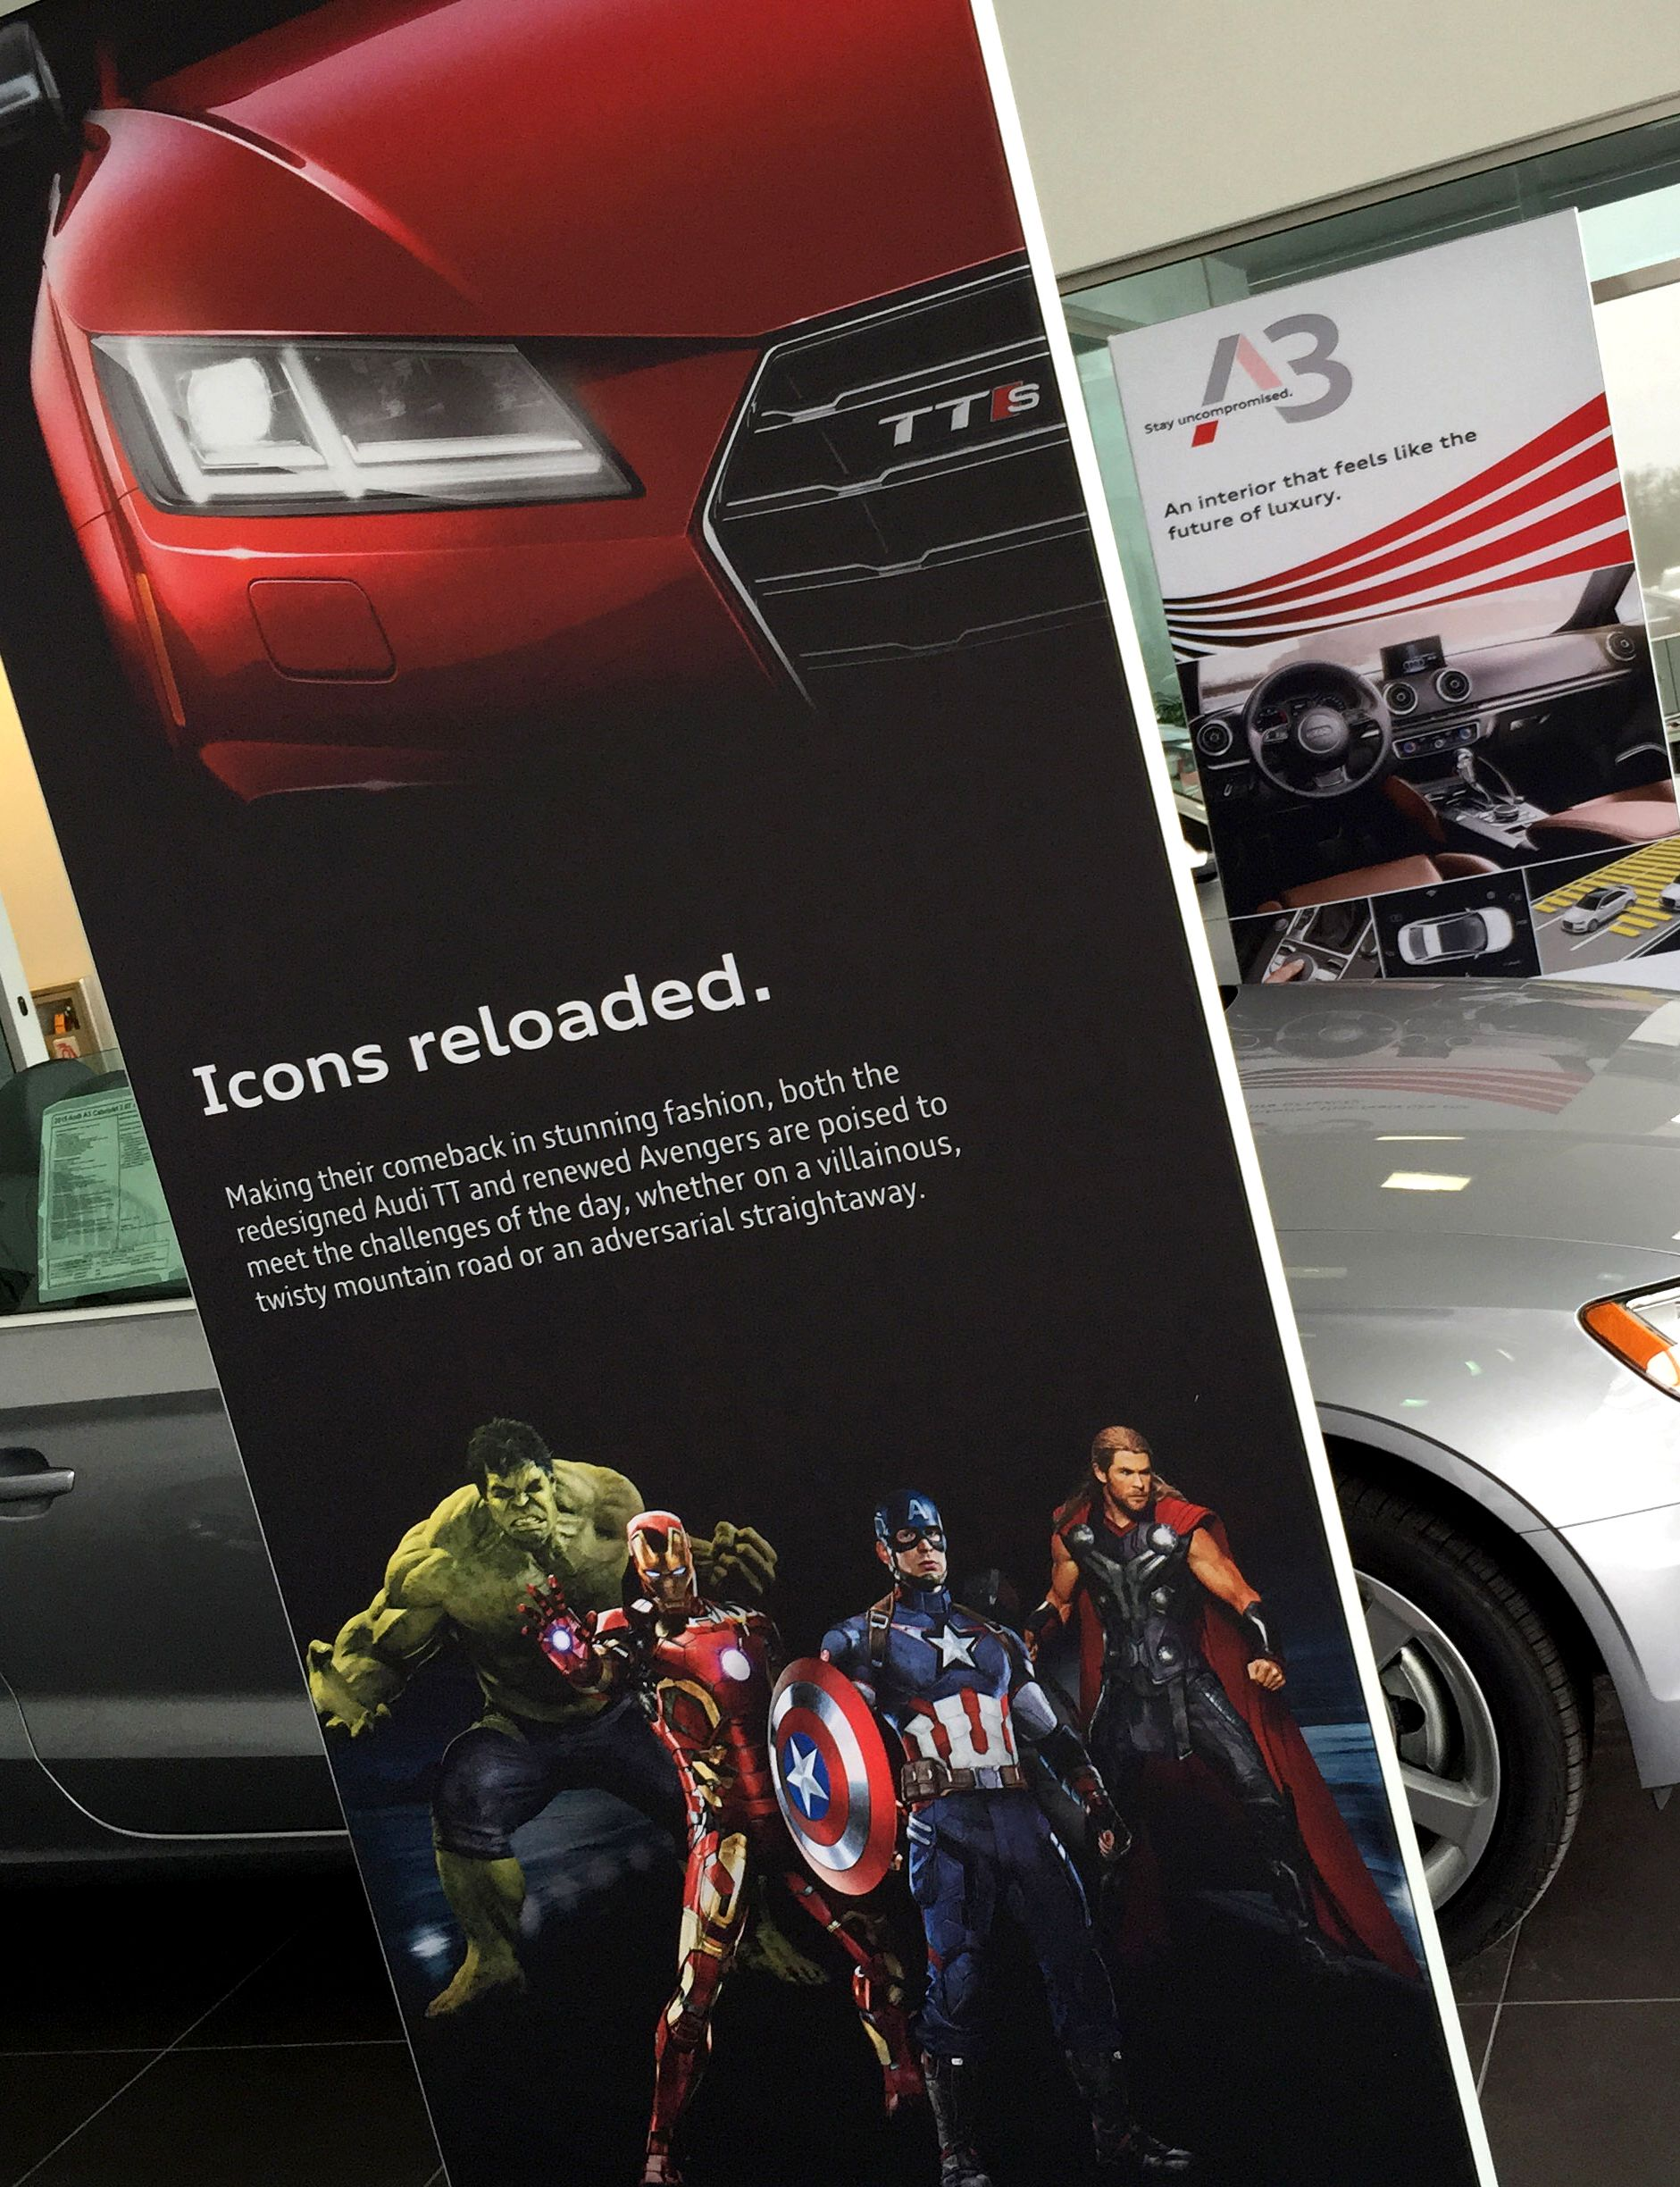 TTS to be featured in the new upcoming Avengers Movie. I would have though they would spring for the RS model.